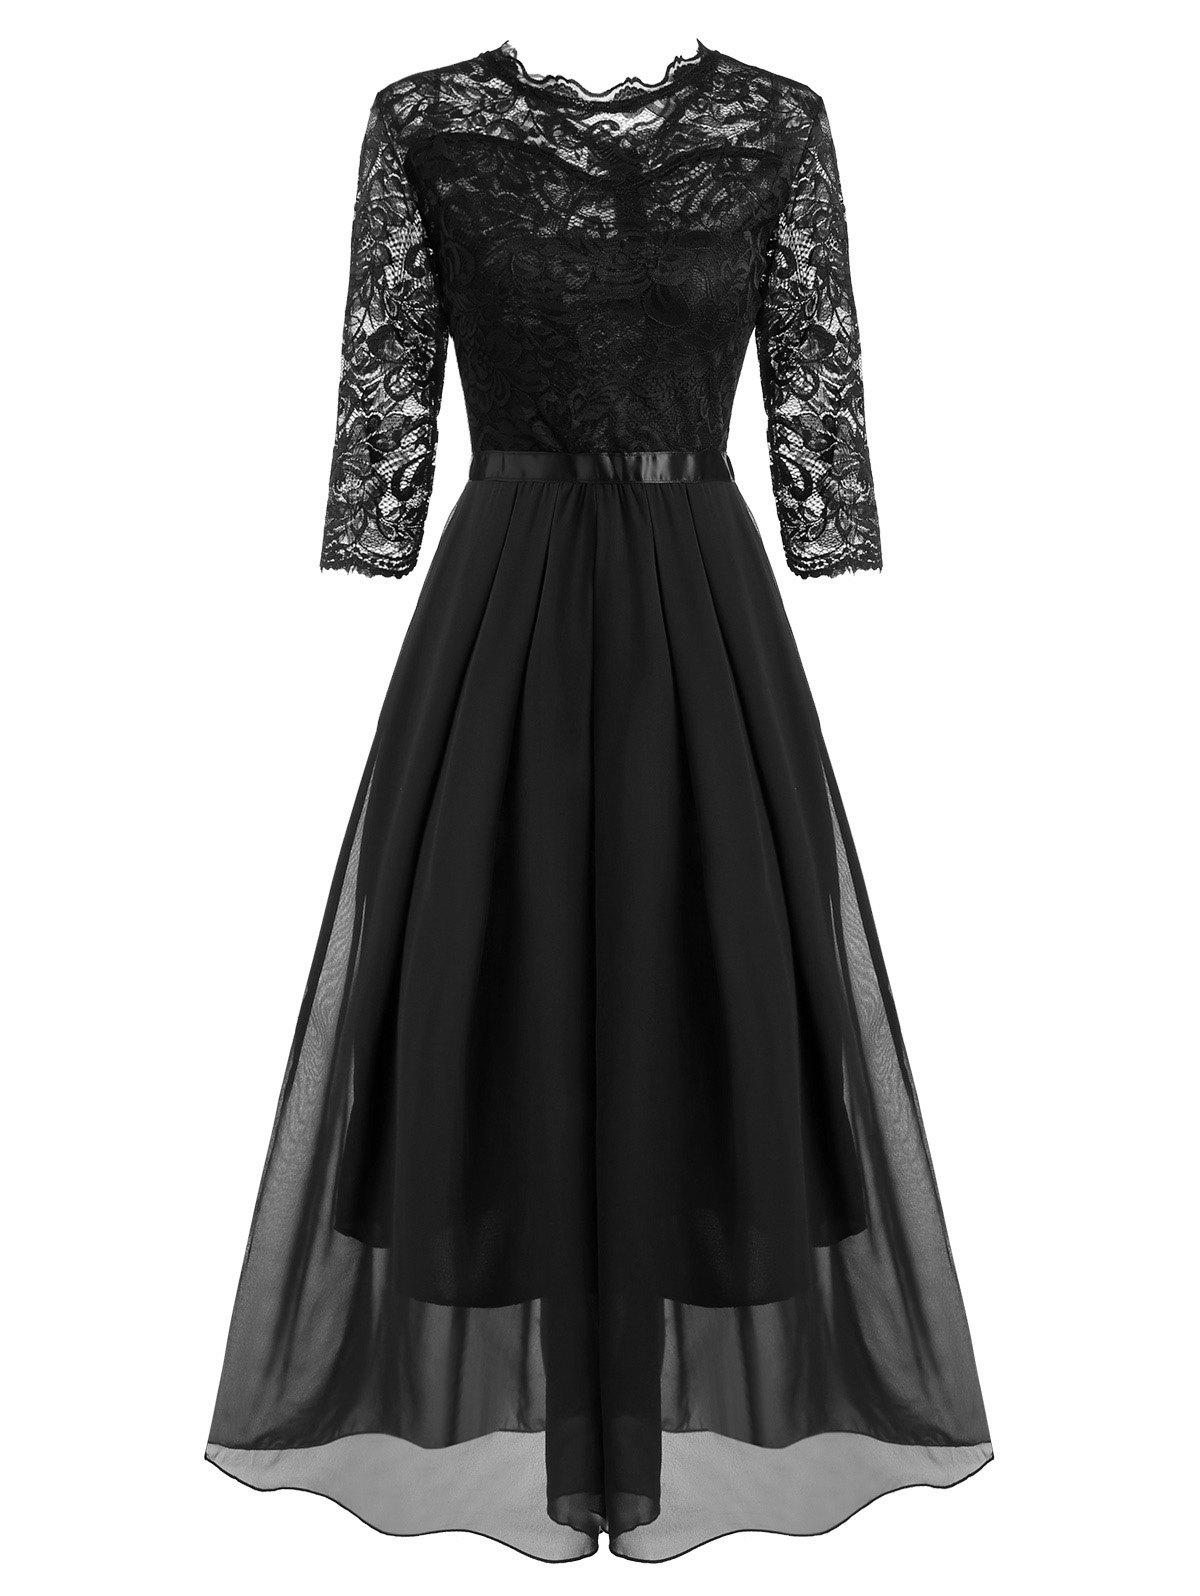 Pleated Detail Lace and Chiffon Floor Length Dress - BLACK M